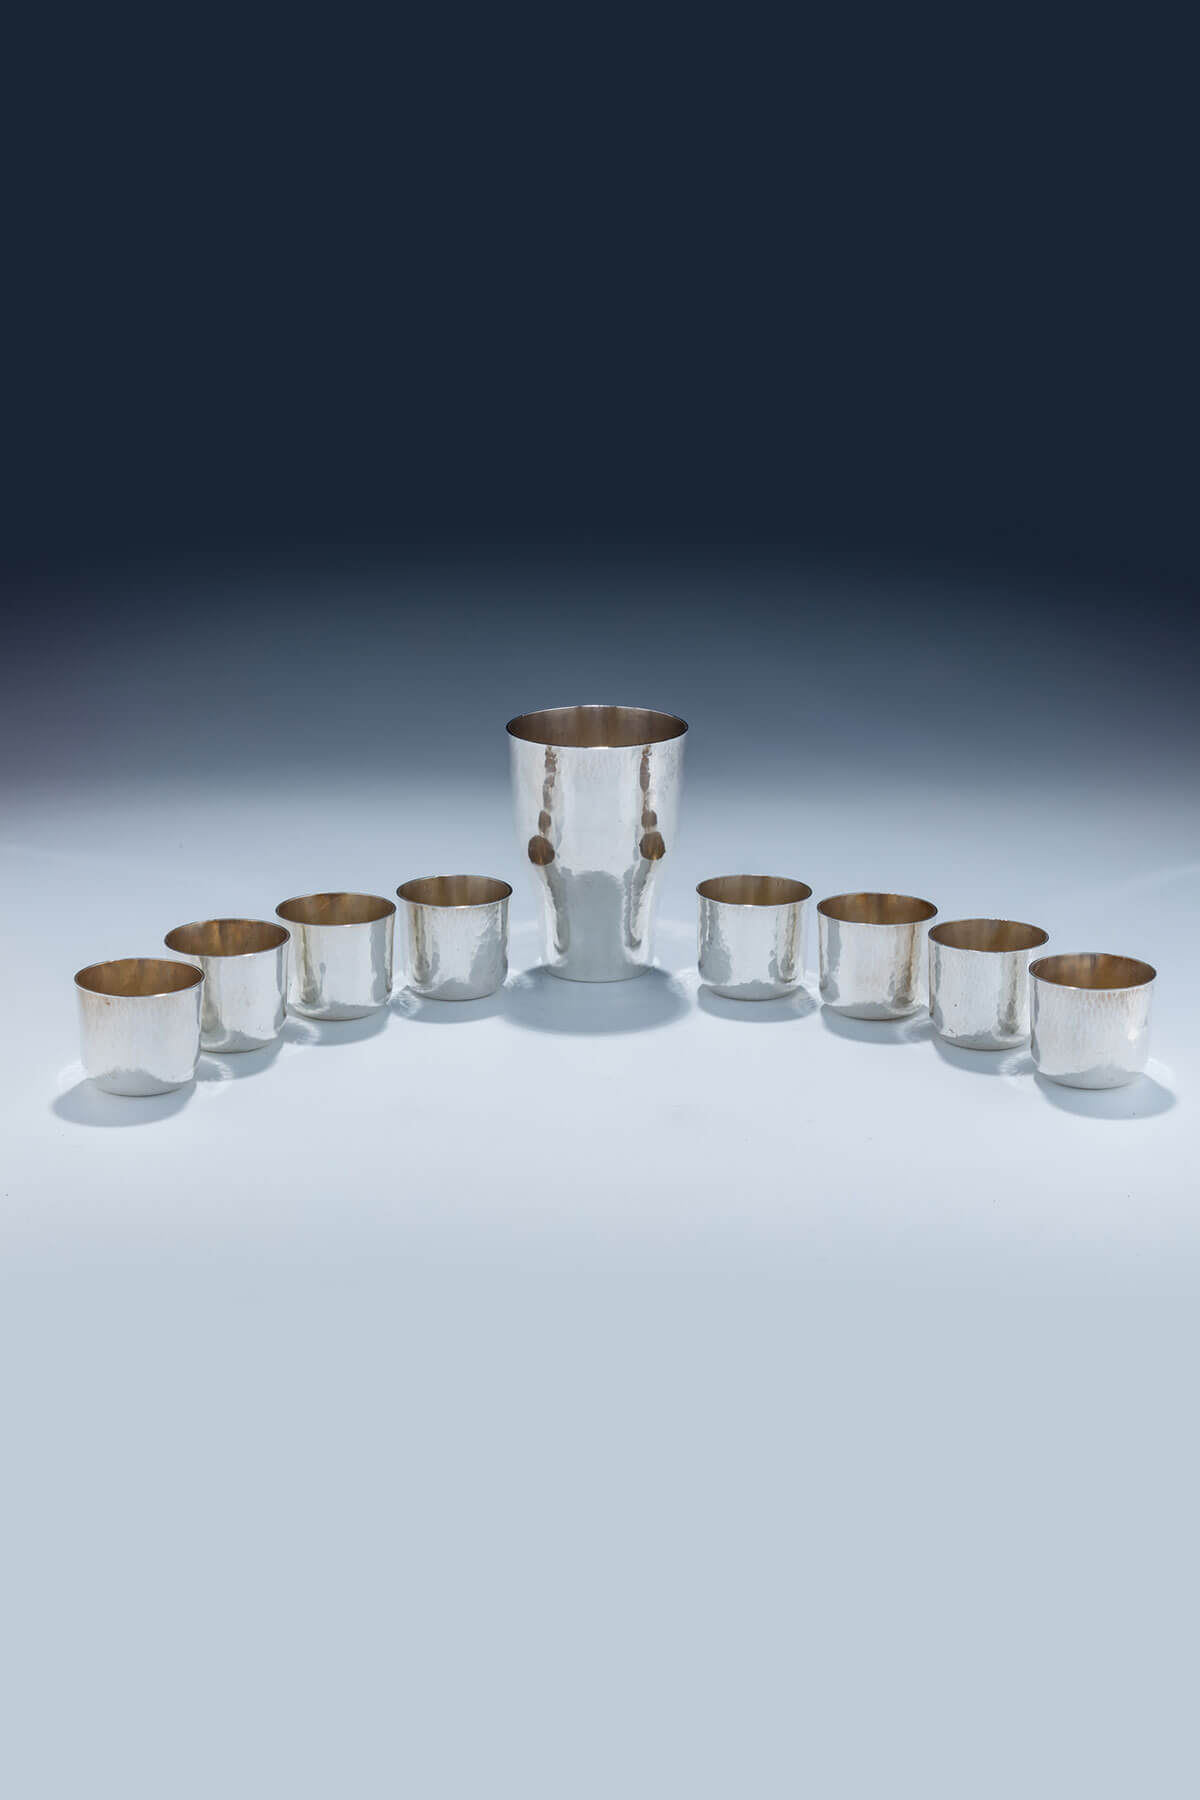 143. A Sterling Silver Kiddush Set